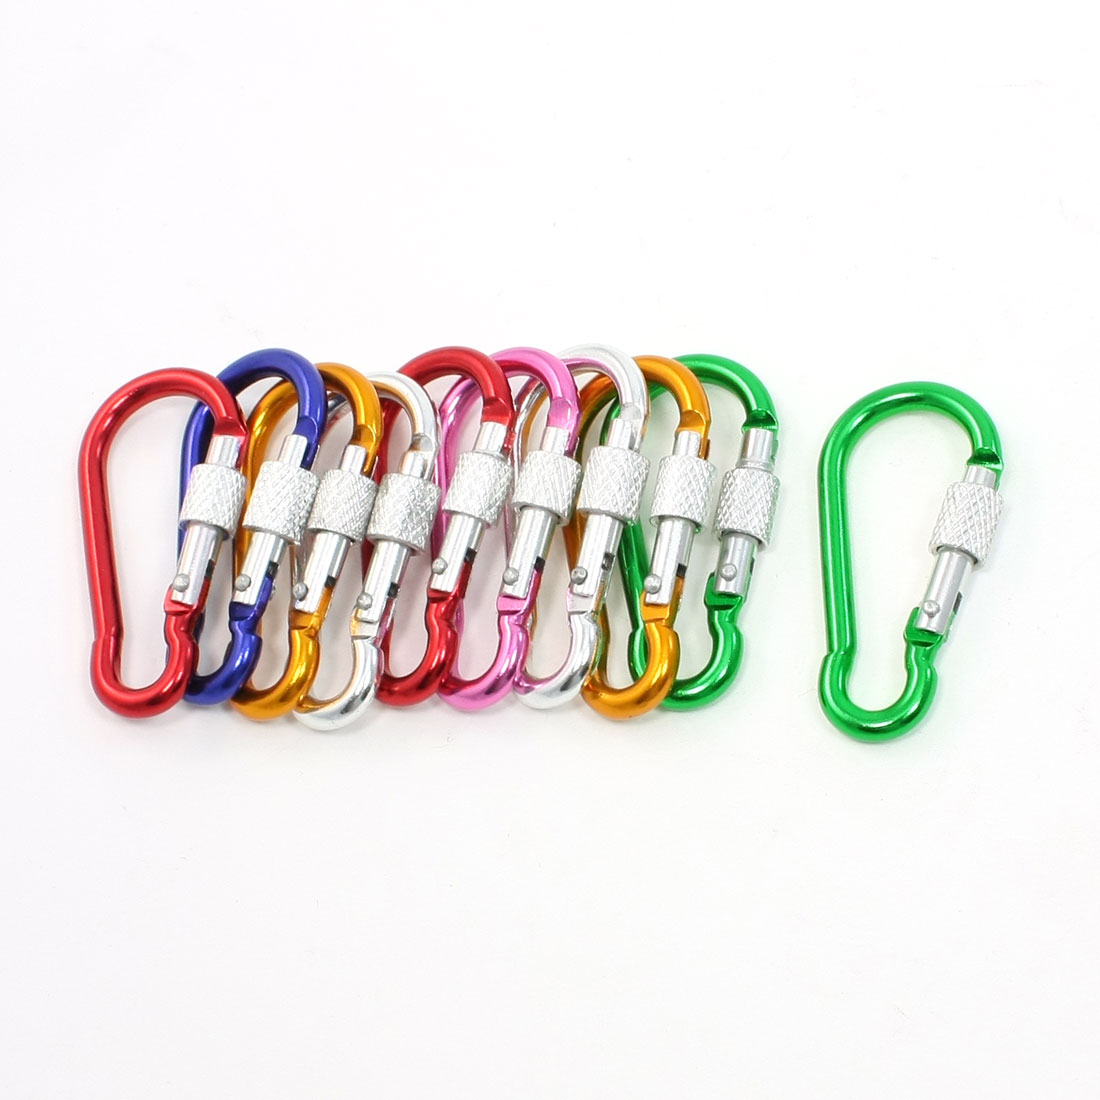 10 Pcs Multi Color Spring Loaded Gate Screw Lock Carabiner Hooks